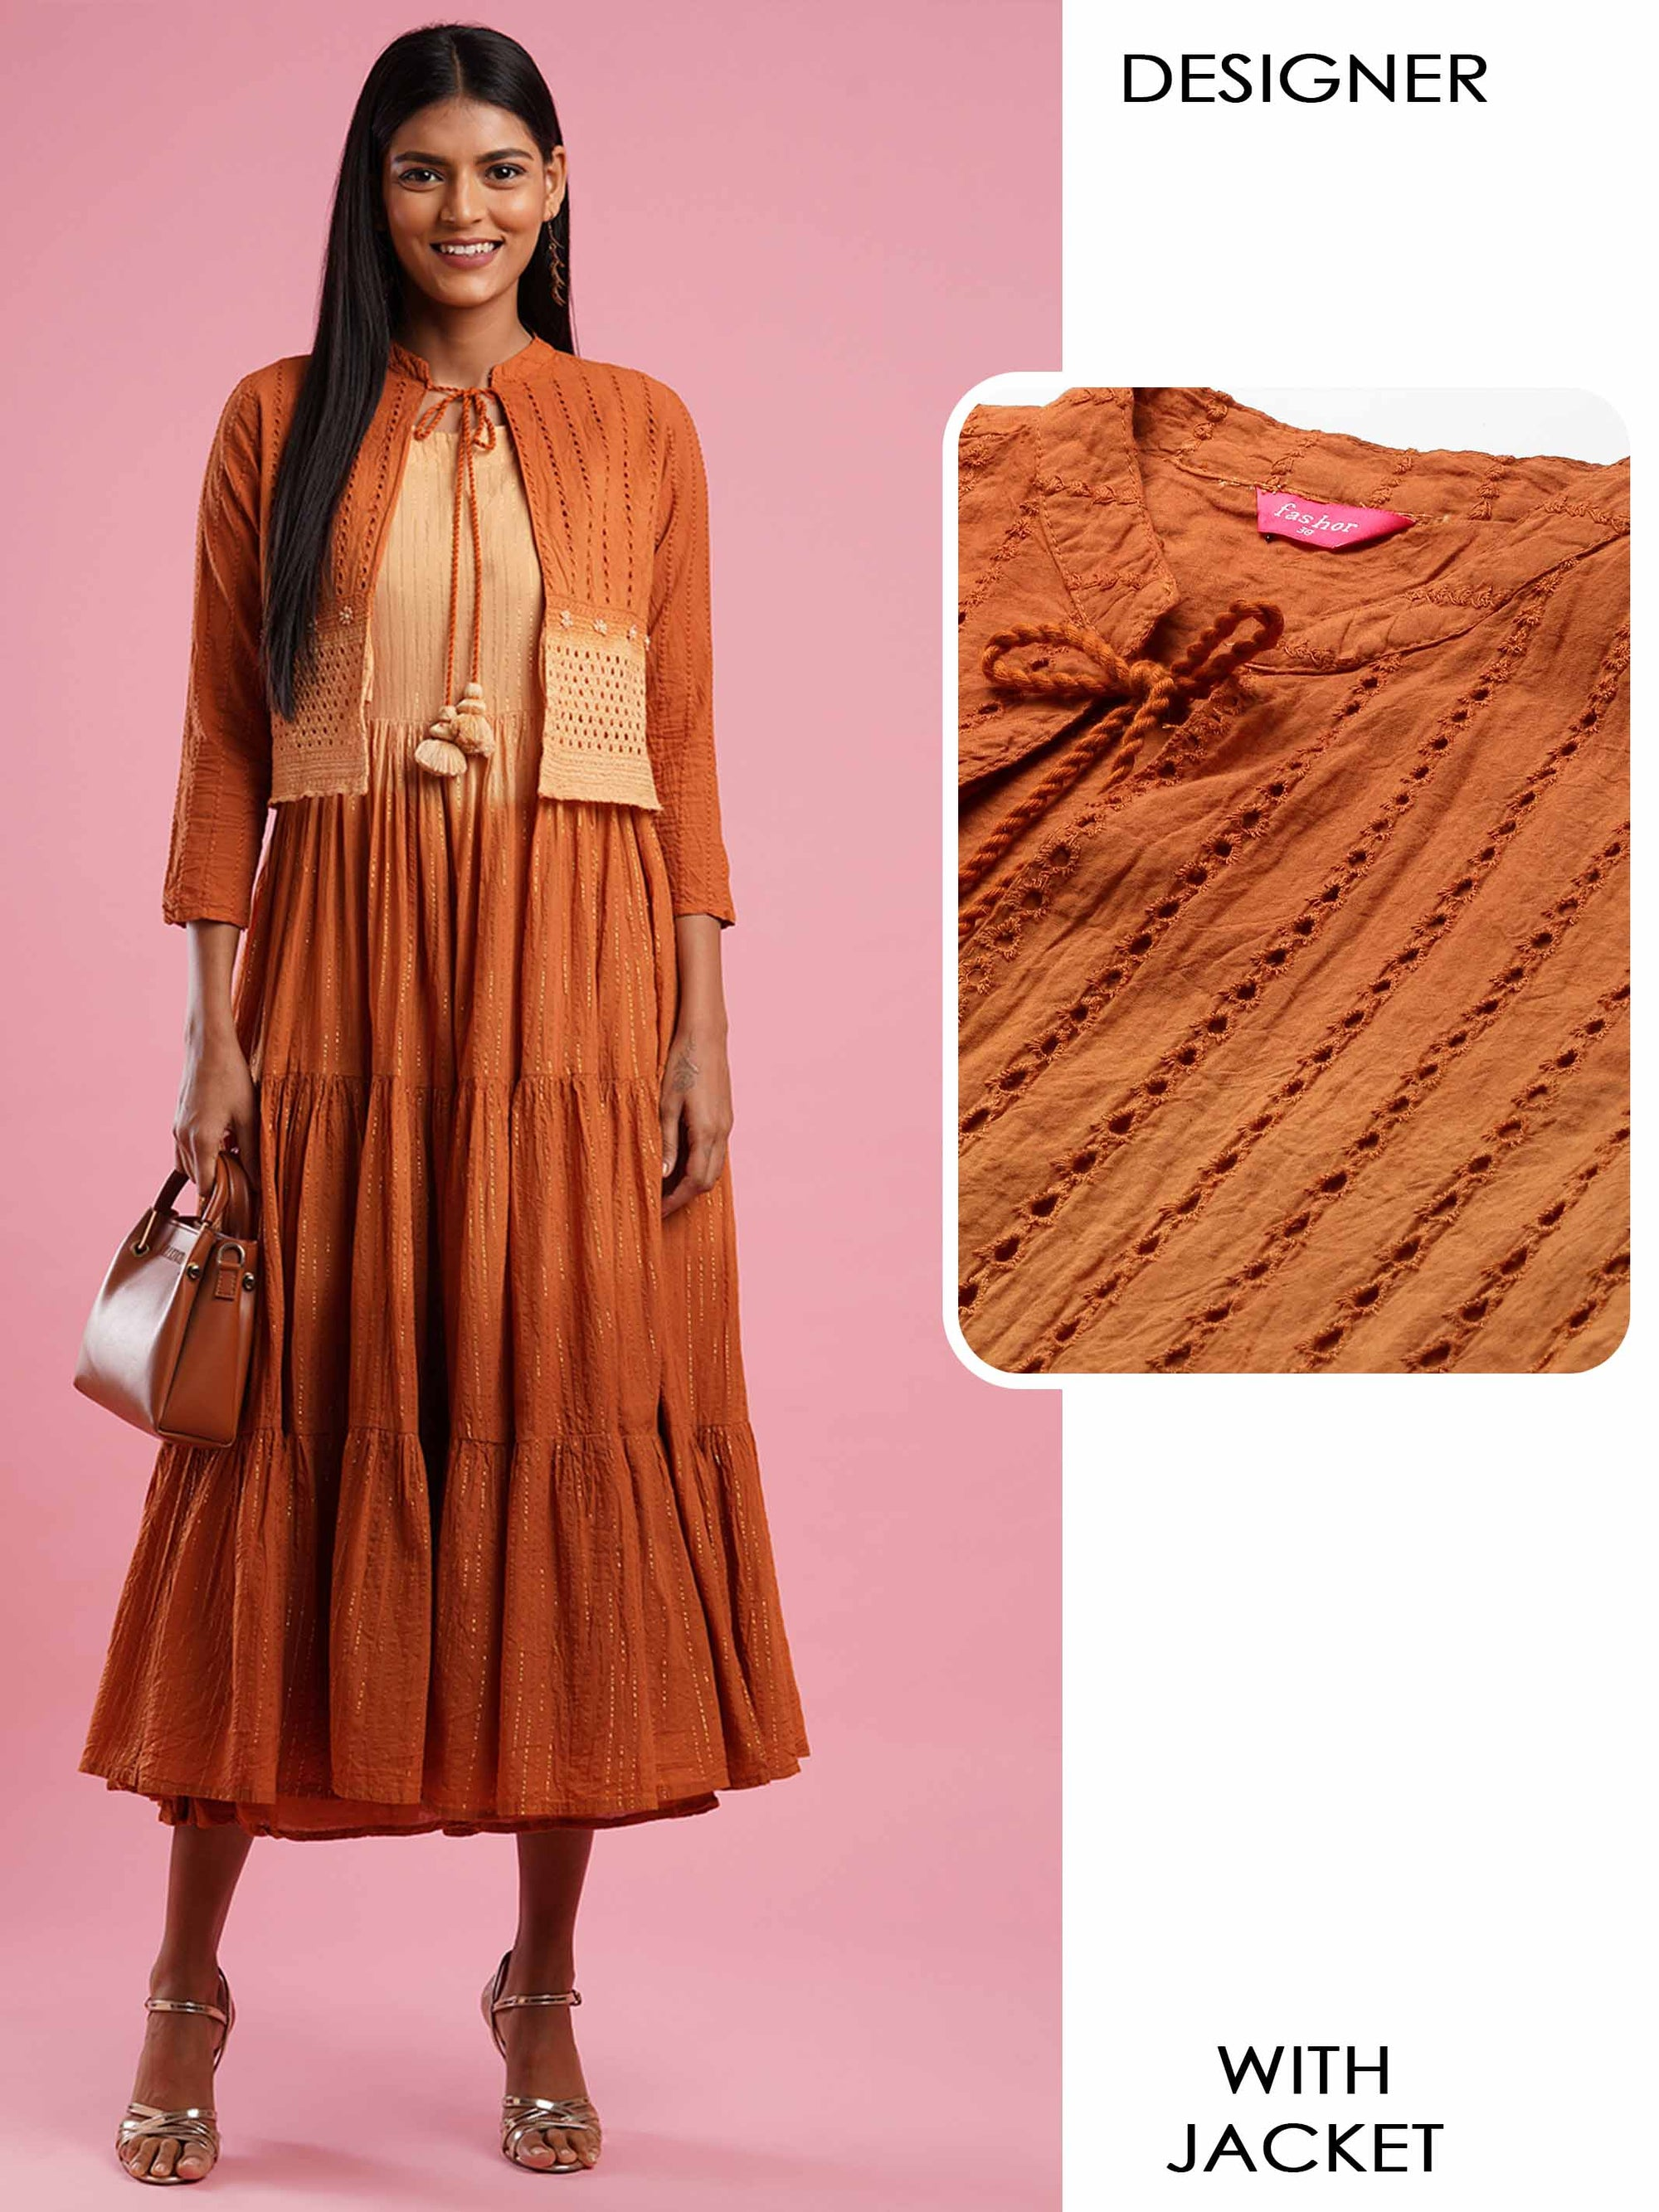 Lurex Woven Tiered Flared Maxi Dress with Handcrafted & Ombre Dyed Jacket - Rust Orange